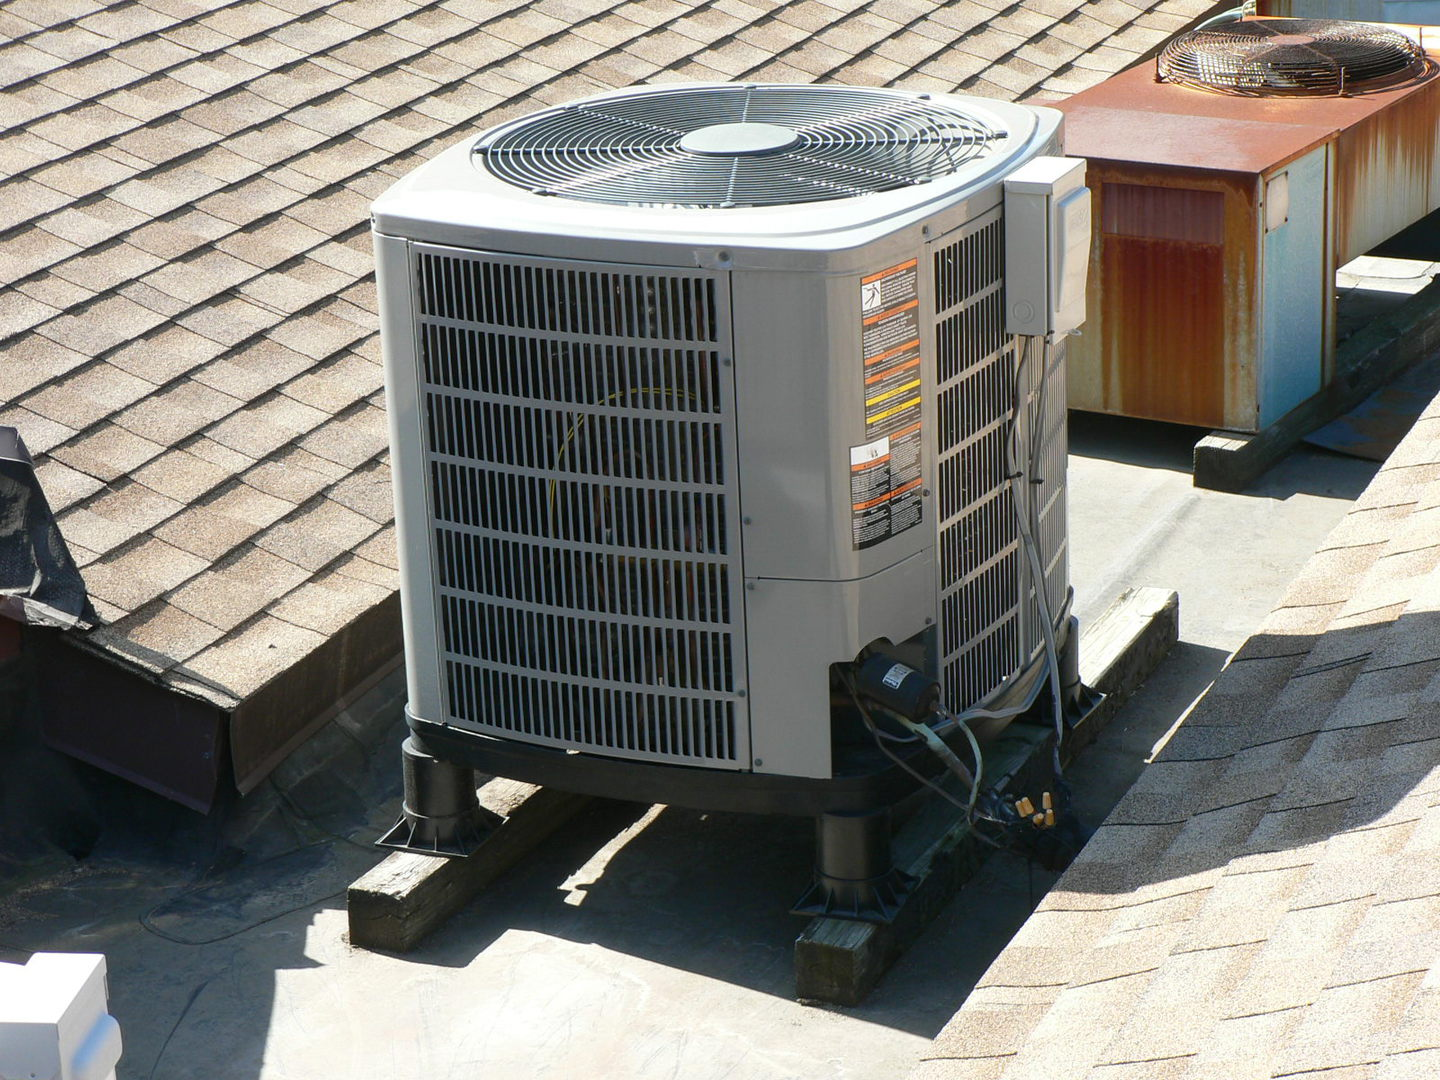 #623D25 All Seasons Heating & Air Conditioning Speciality  2017 14092 Small Duct High Velocity Air Conditioning photo with 1440x1080 px on helpvideos.info - Air Conditioners, Air Coolers and more